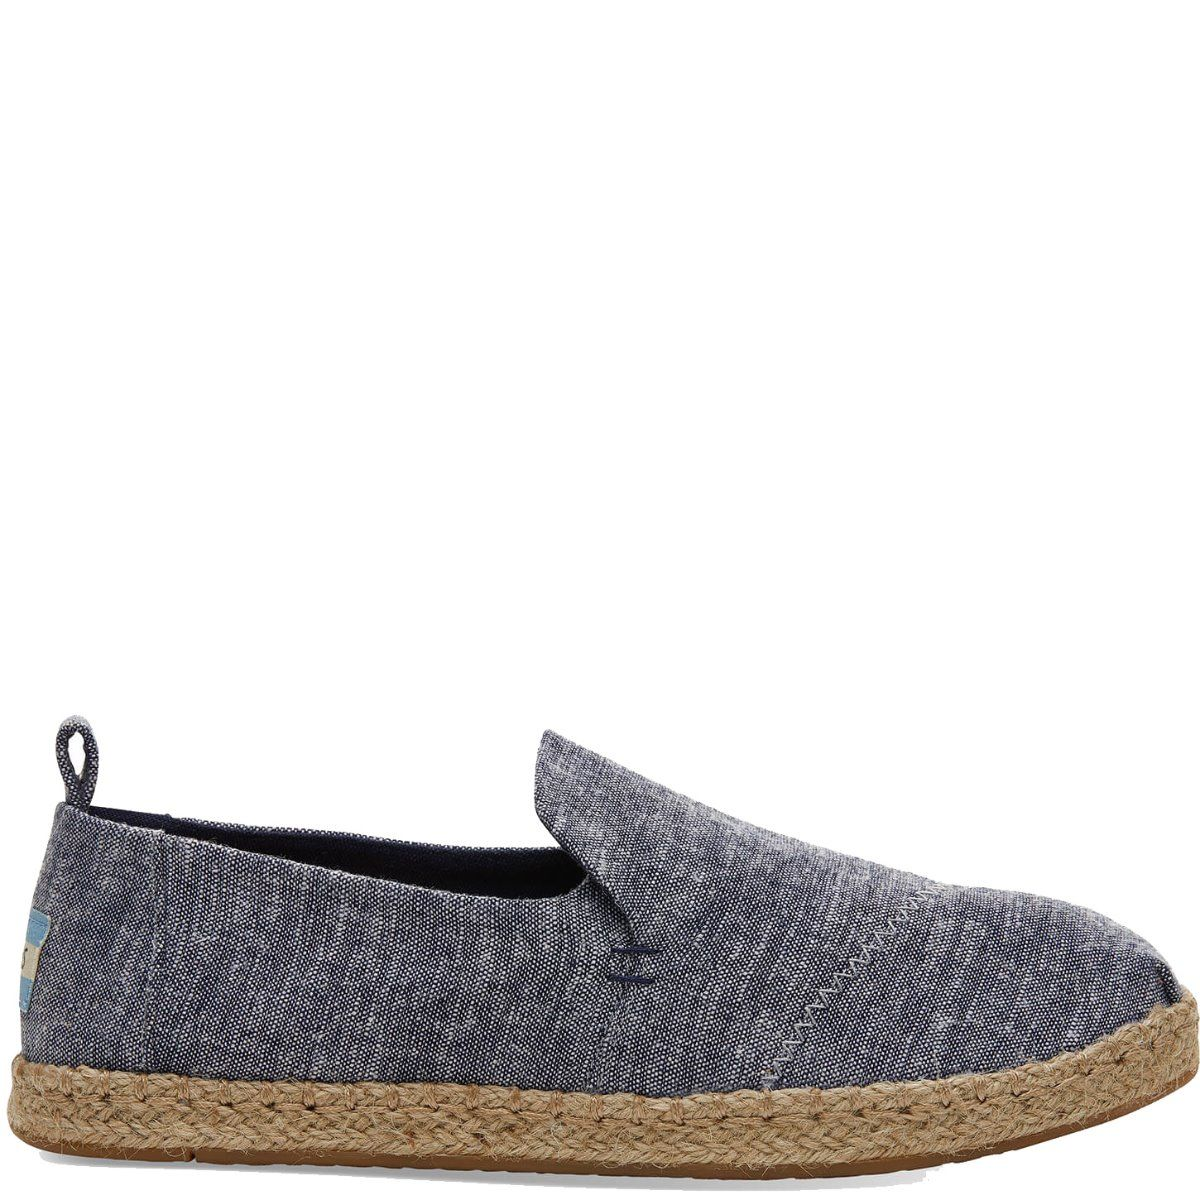 2394b41ca69 Toms DECONSTRUCTED ALPARGATA ROPE 10013365 Navy Chambray